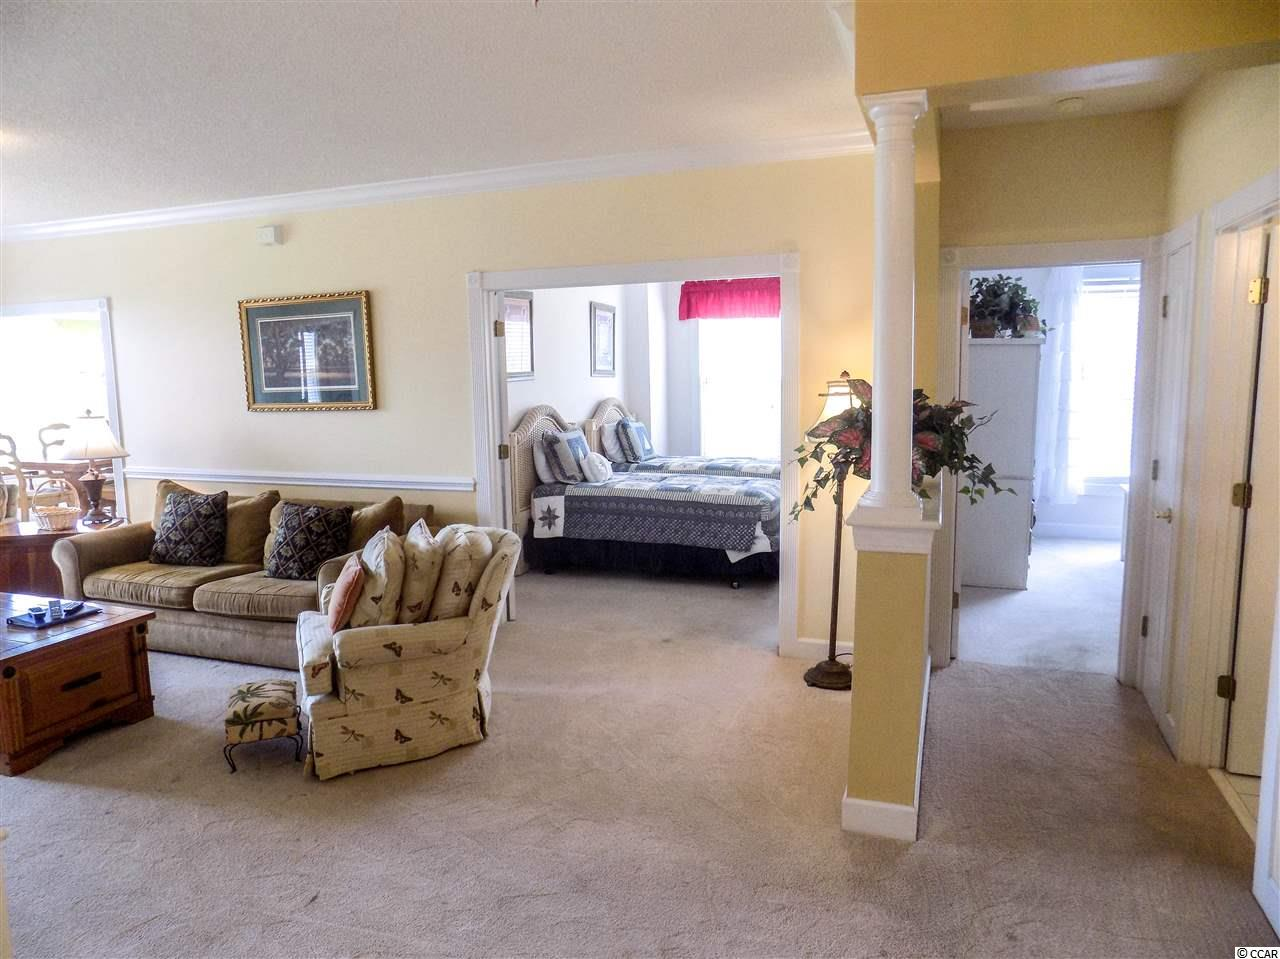 3 bedroom  Harbour Cove at Barefoot Resort condo for sale